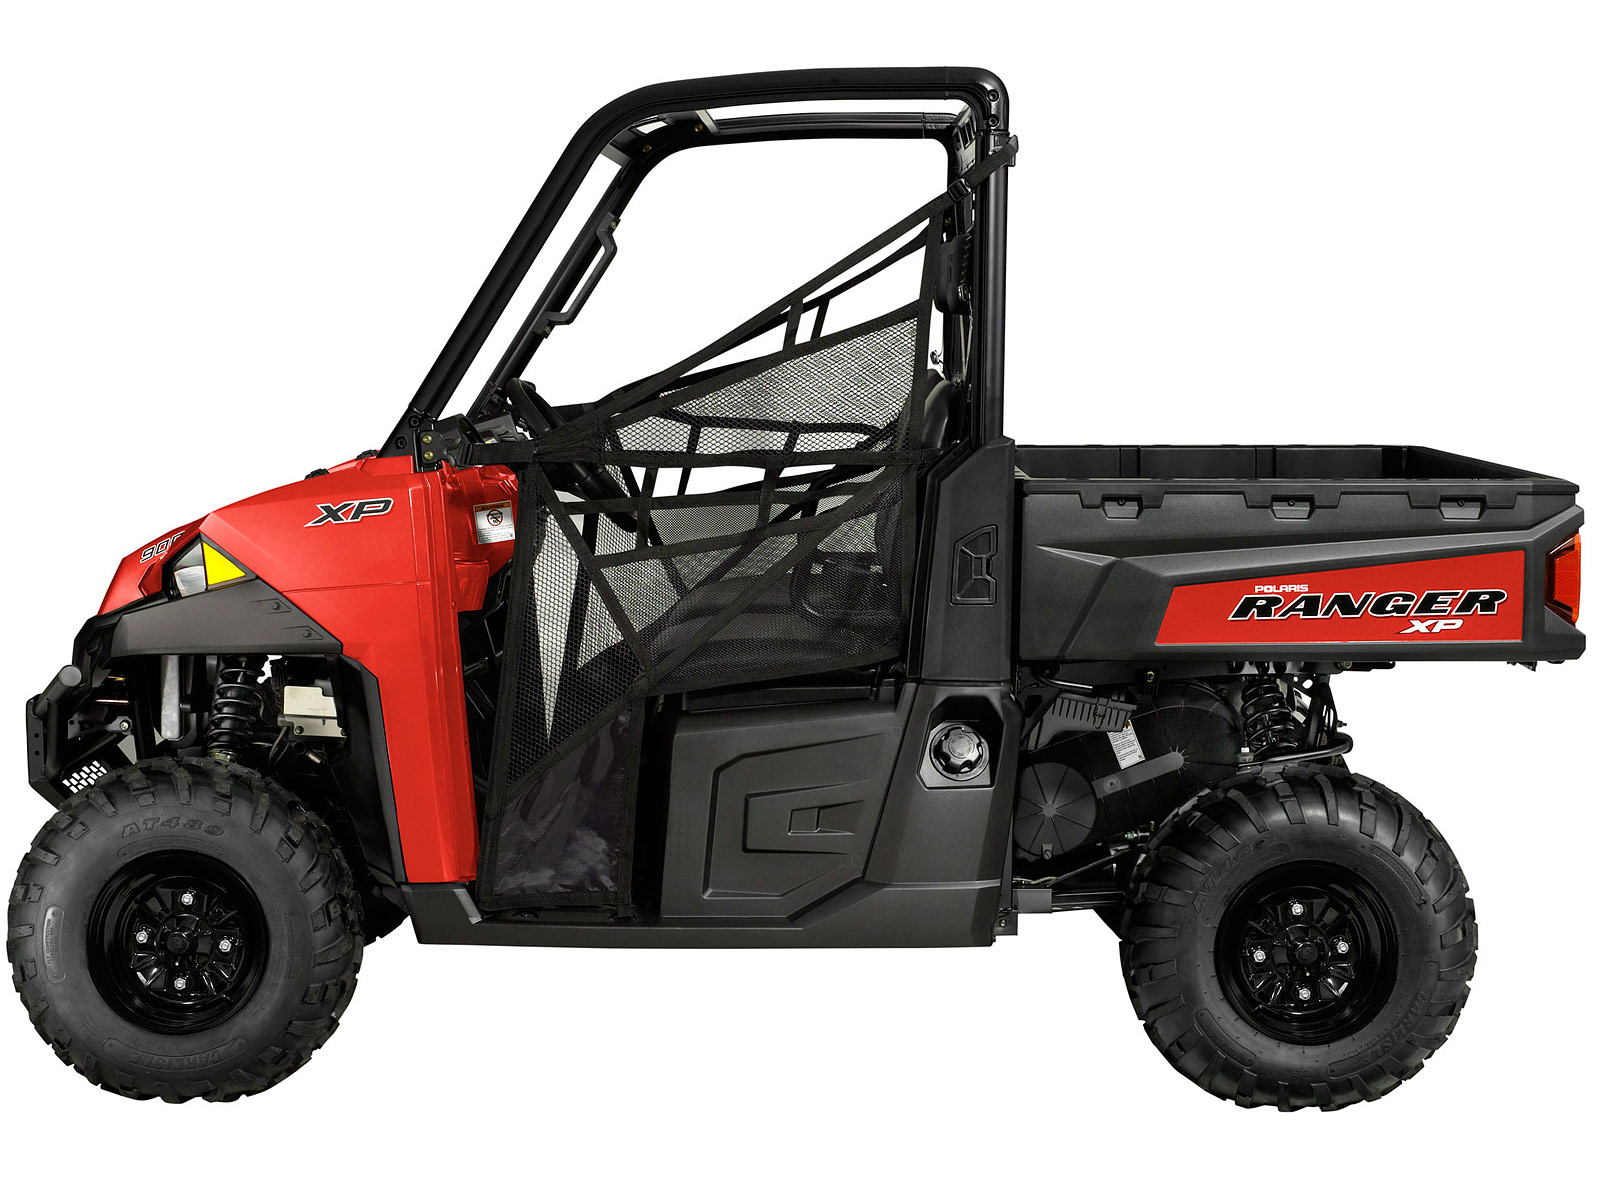 hight resolution of  2013 polaris ranger xp900 atv pictures 2